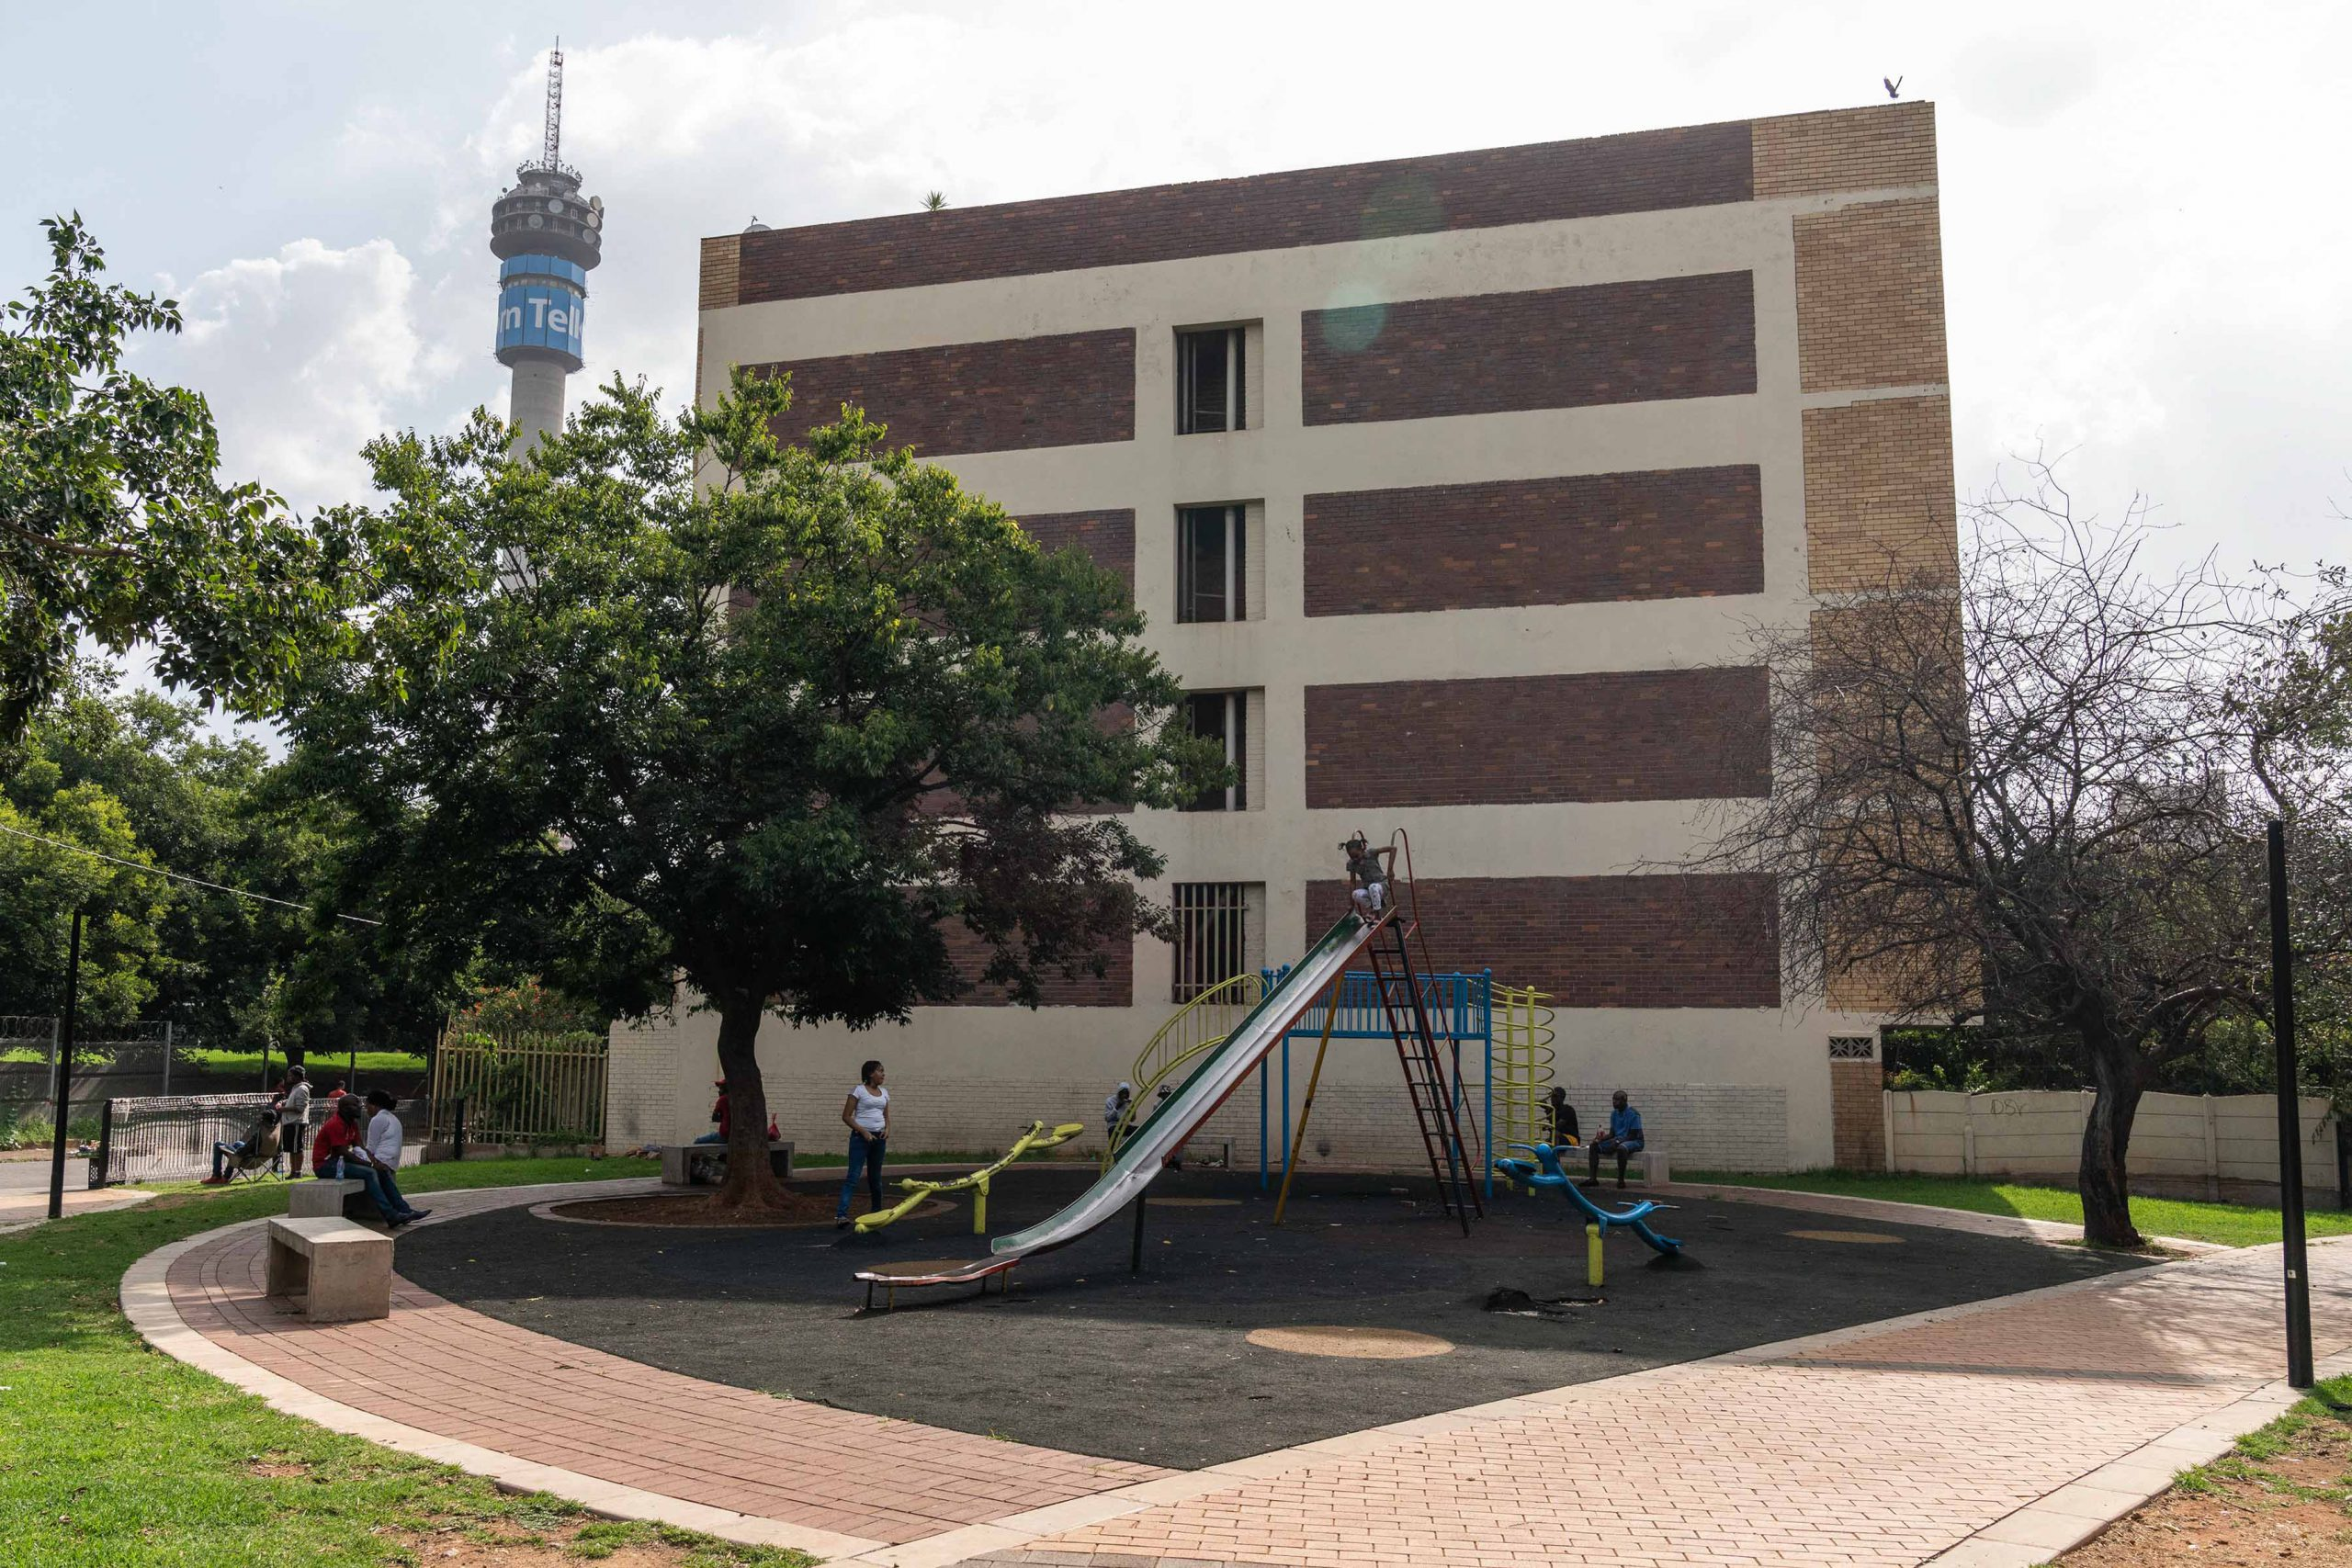 15 January 2020: Some of the children's recreational facilities at Barnato Park, with the Hillbrow tower in the background.